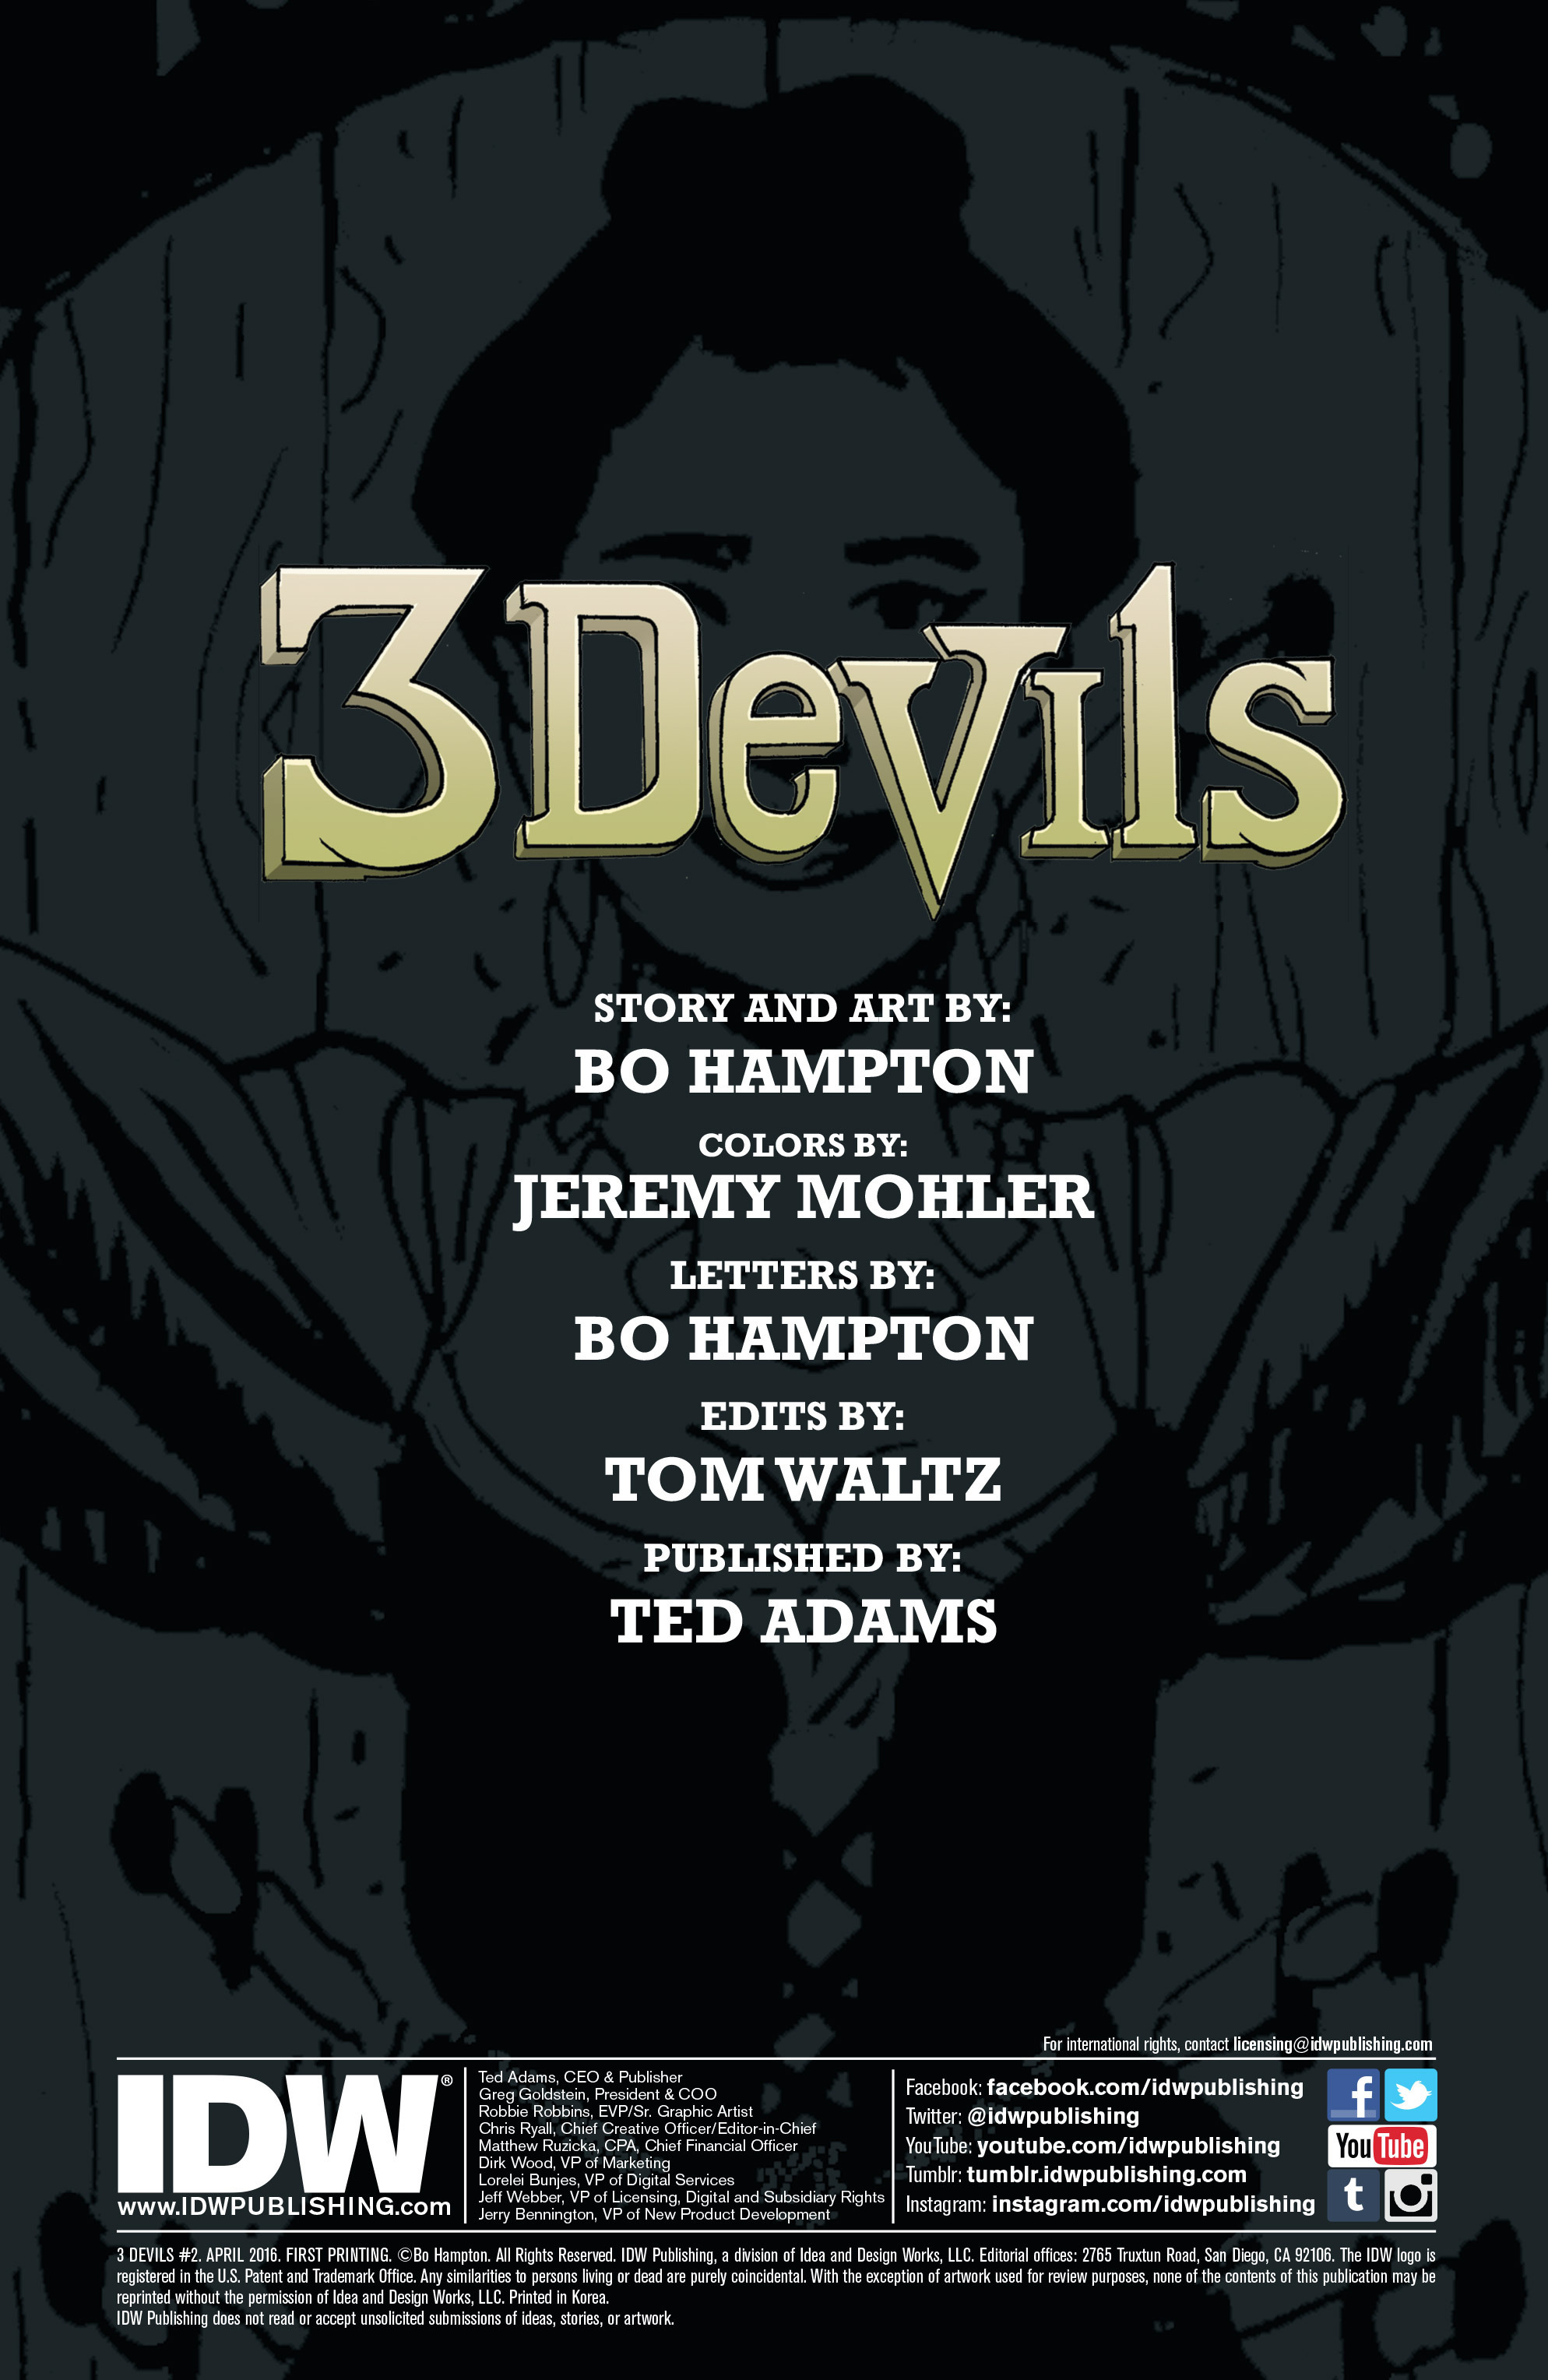 Read online 3 Devils comic -  Issue #2 - 2